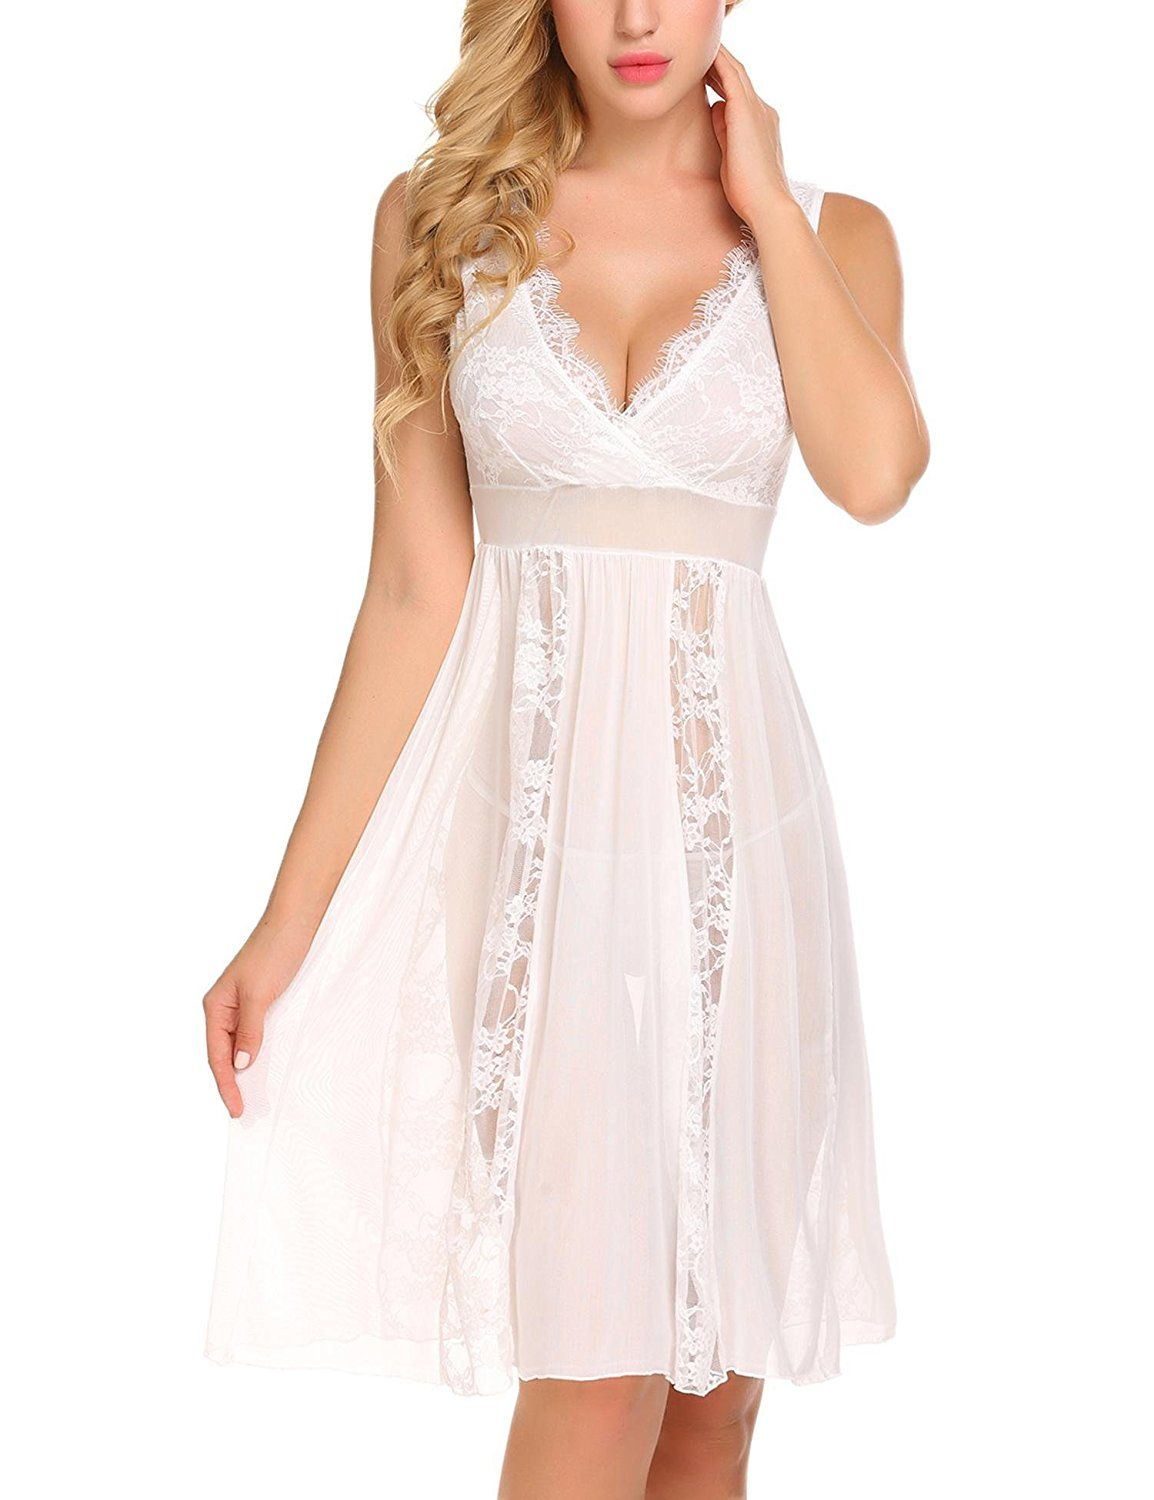 Avidlove Womens Sexy Long Lace Lingerie Nightdress Sheer Nightgown Chemise White At Amazon Womens Clothing Store